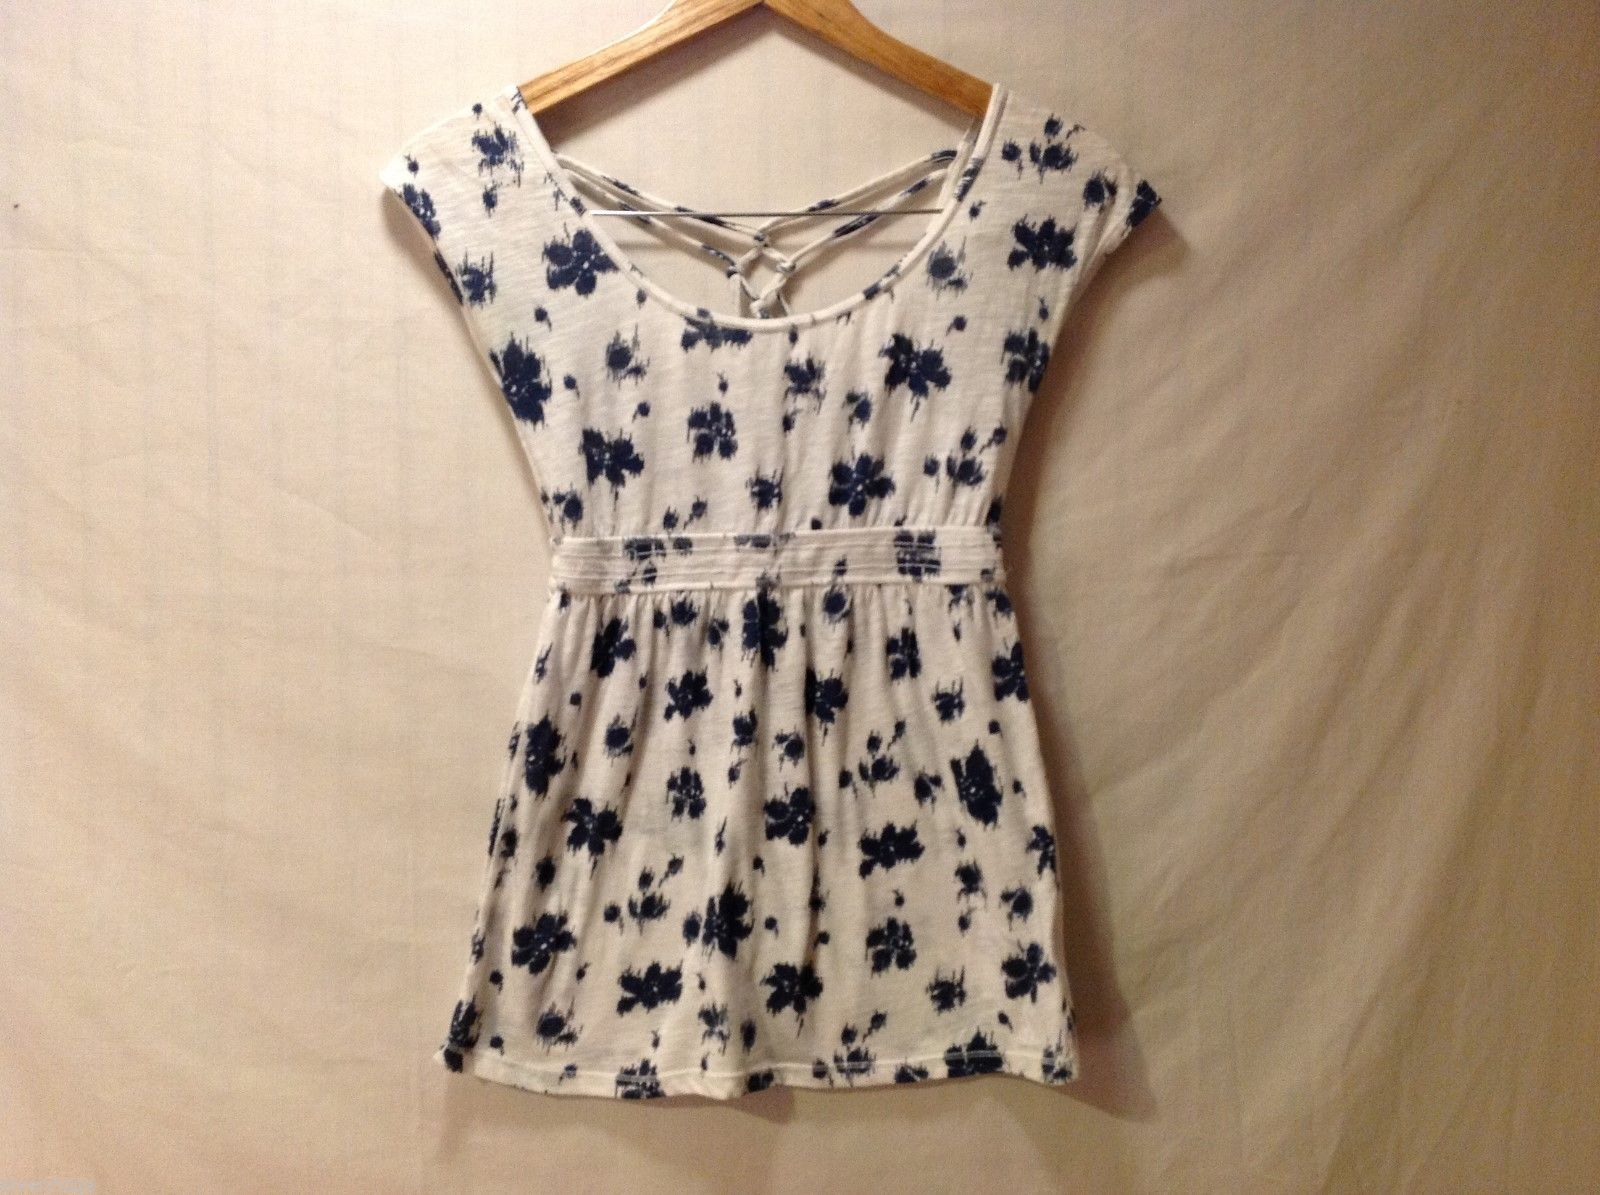 Aeropostale Juniors White and Blue Top, size S